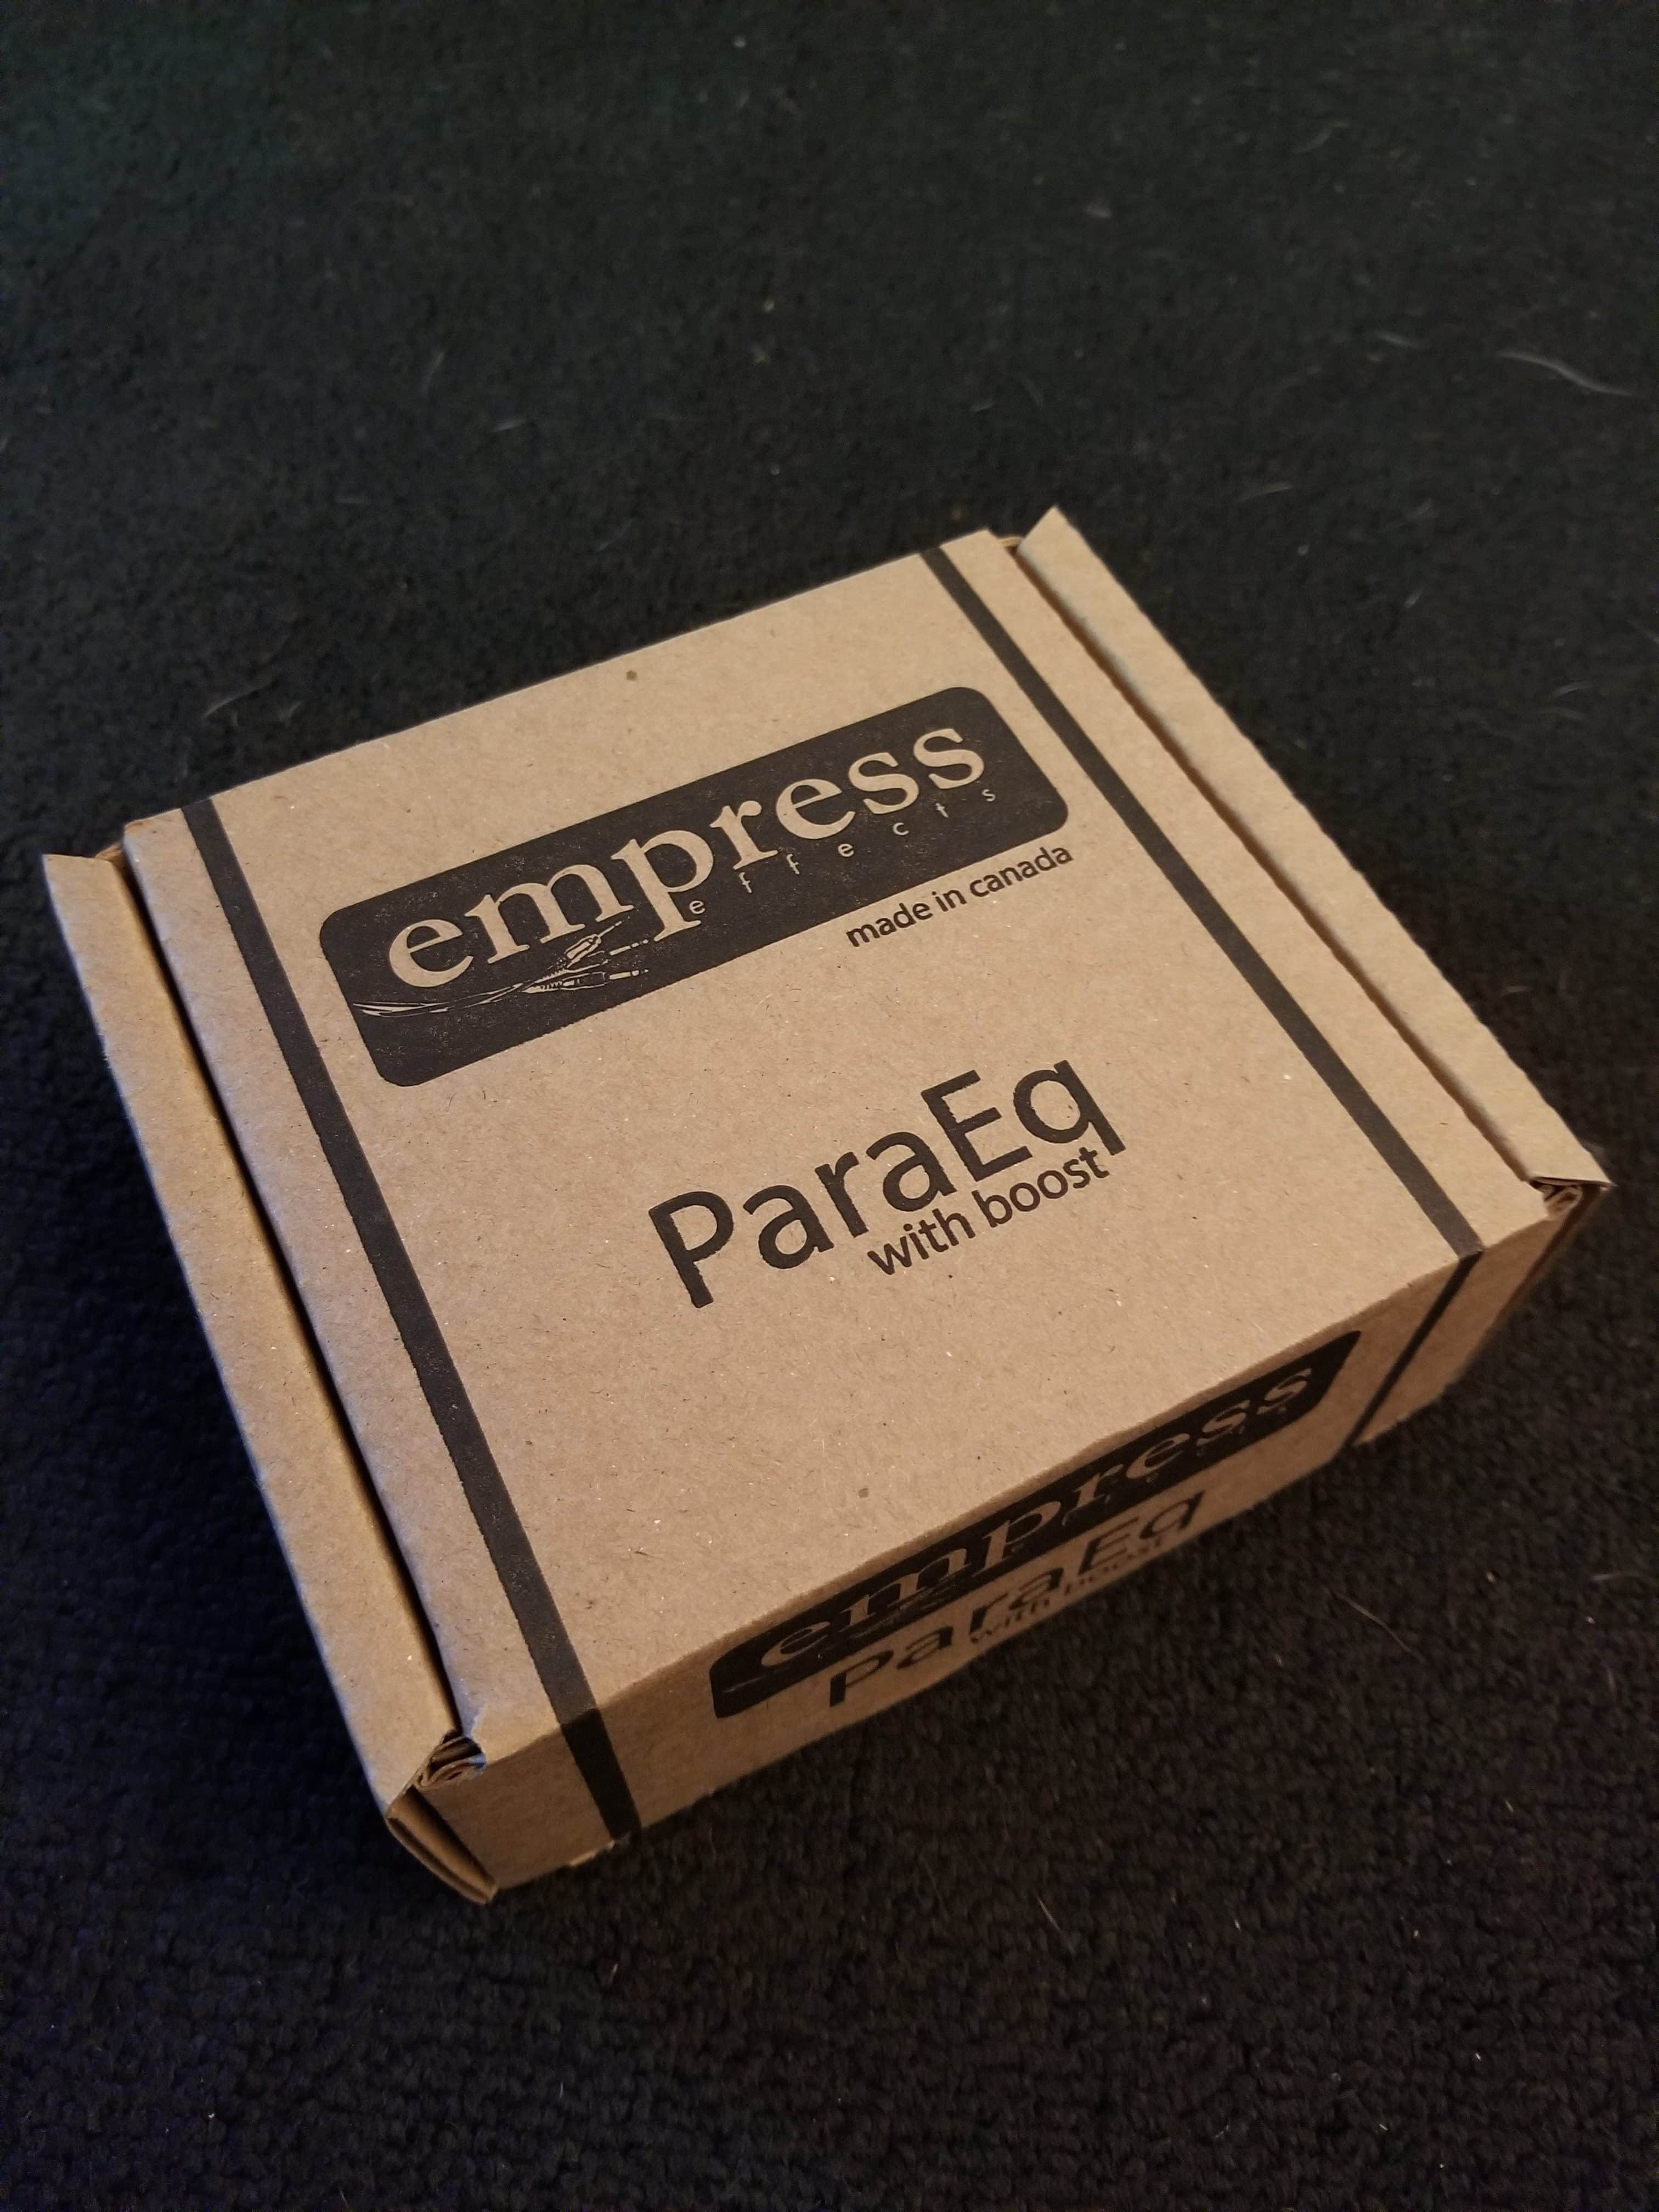 NEW Empress ParaEq With Boost Parametric Equalizer Effects Pedal